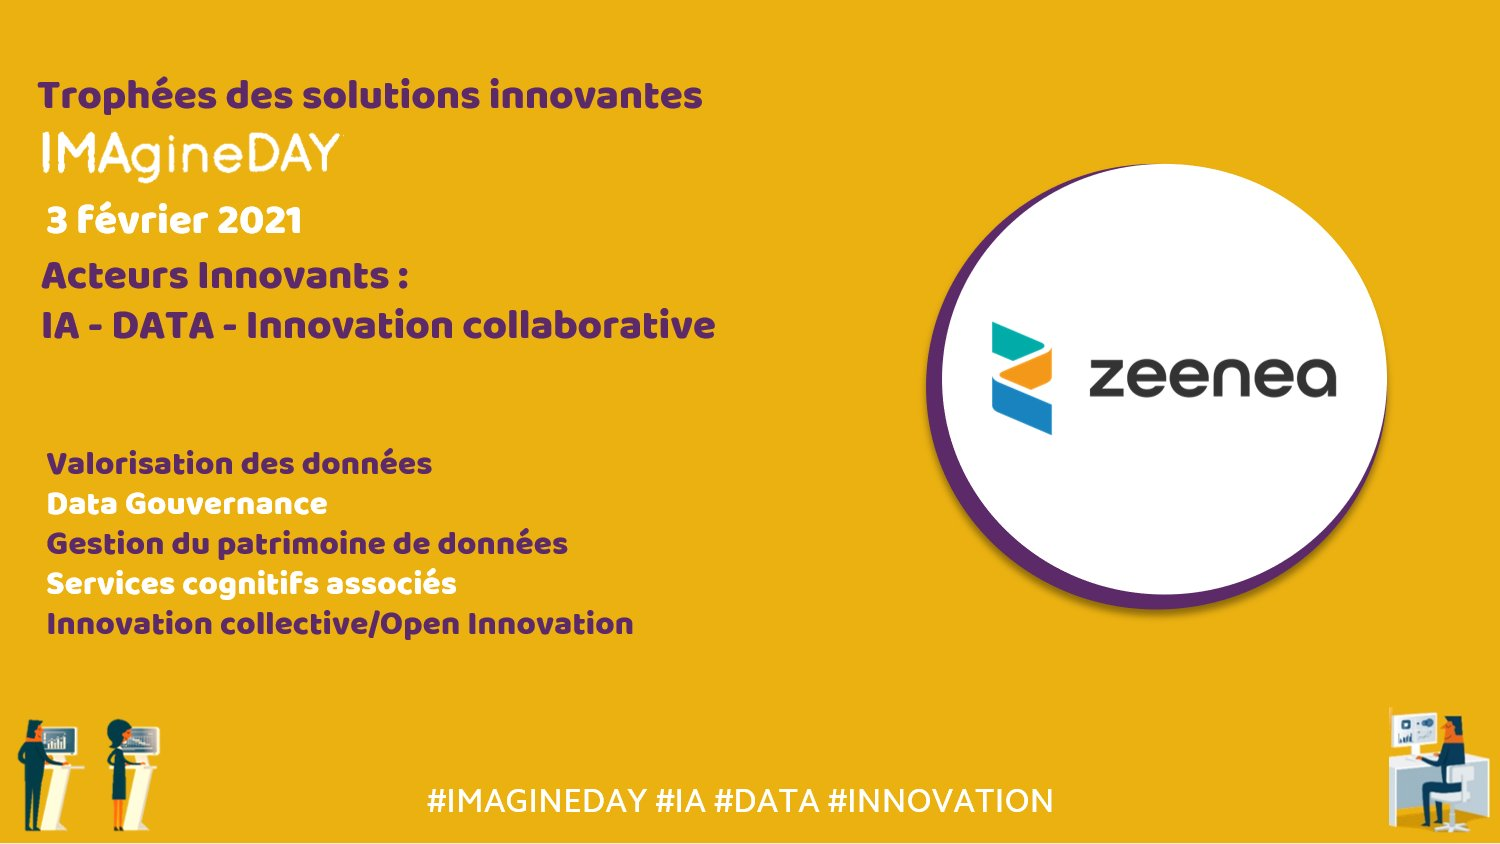 imagineday-zeenea